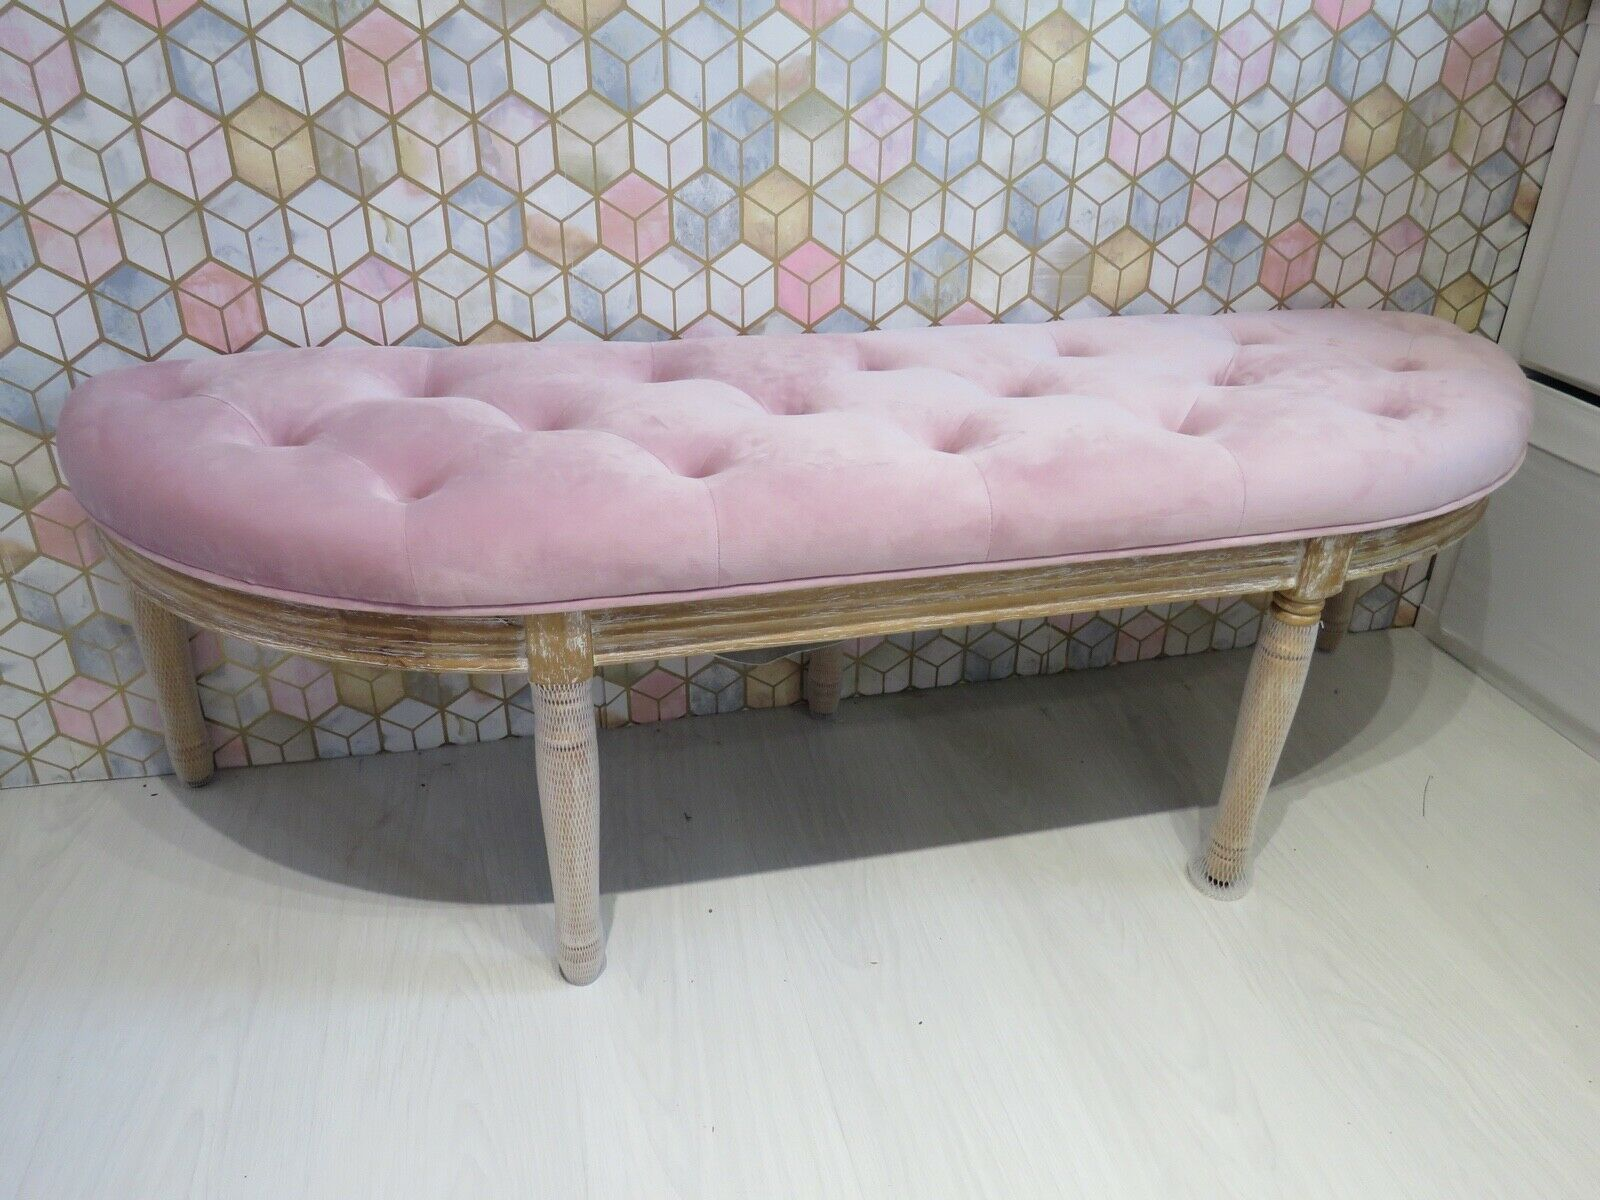 Seating Bench Long Beach 100 Cm Padded Bench Hall Bank Bench Seat Stool For Sale Ebay